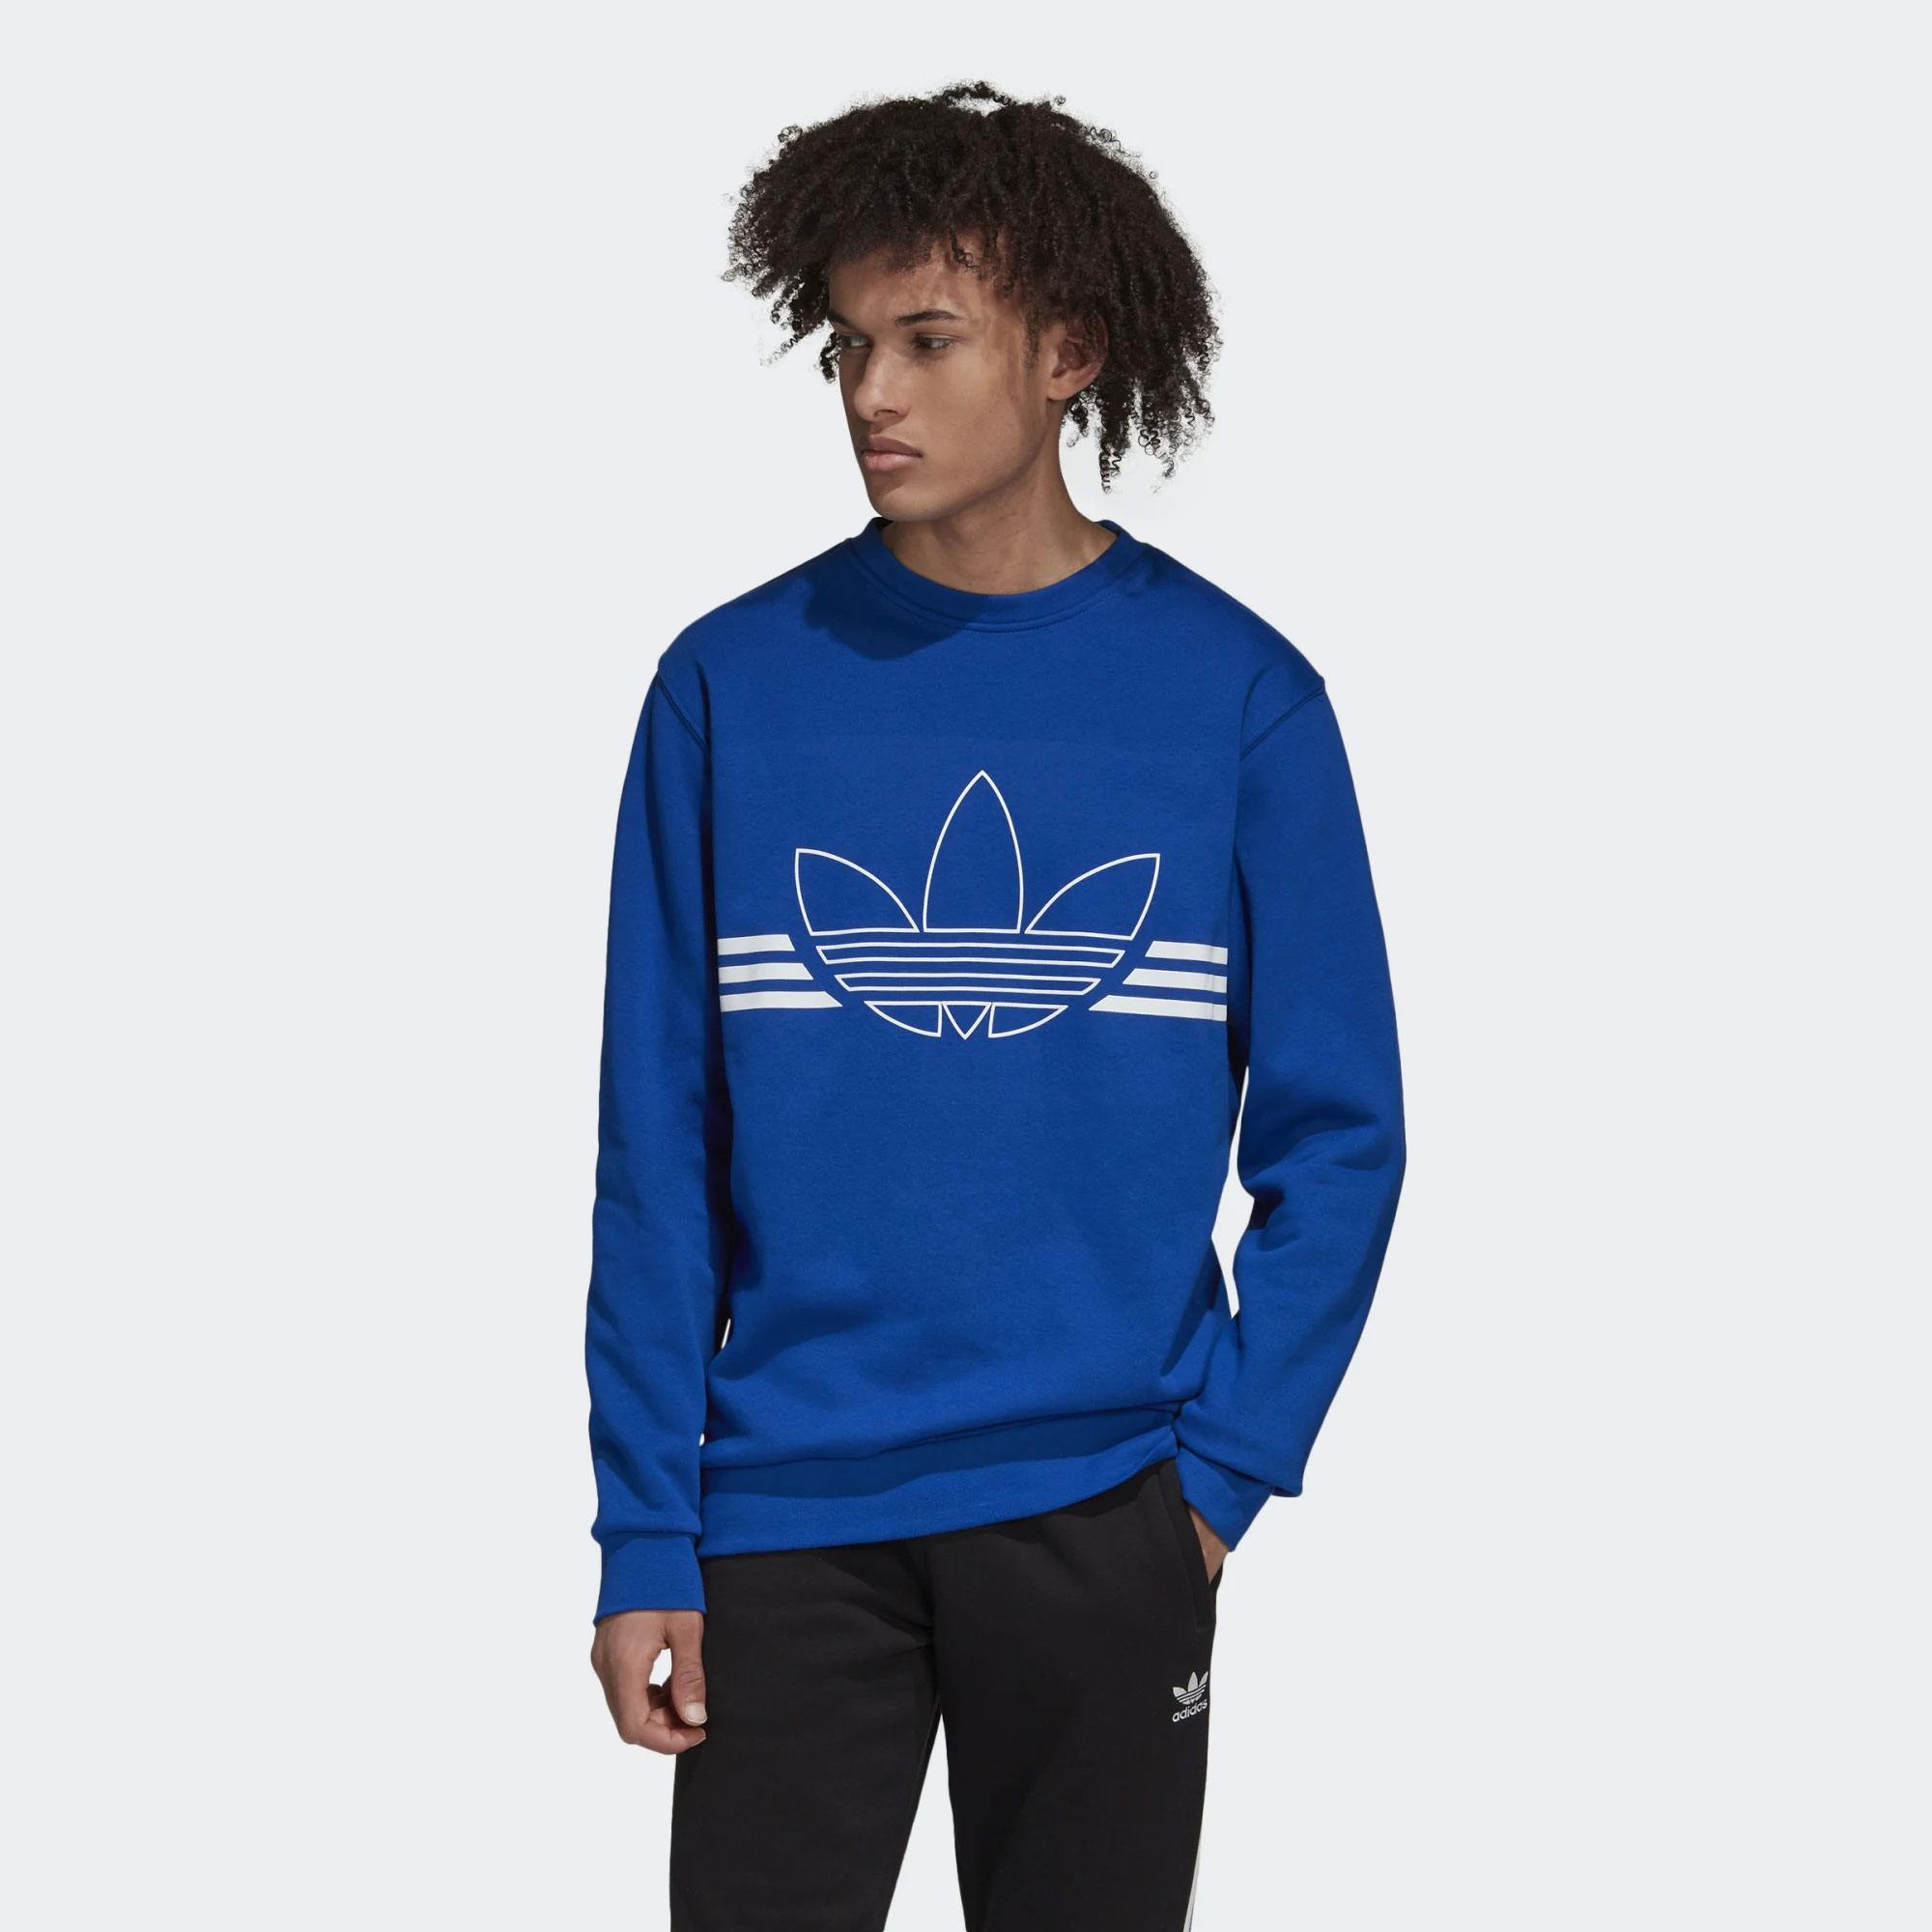 adidas Originals Men's Outline Crewneck Sweatshirt (9000031892_7666)